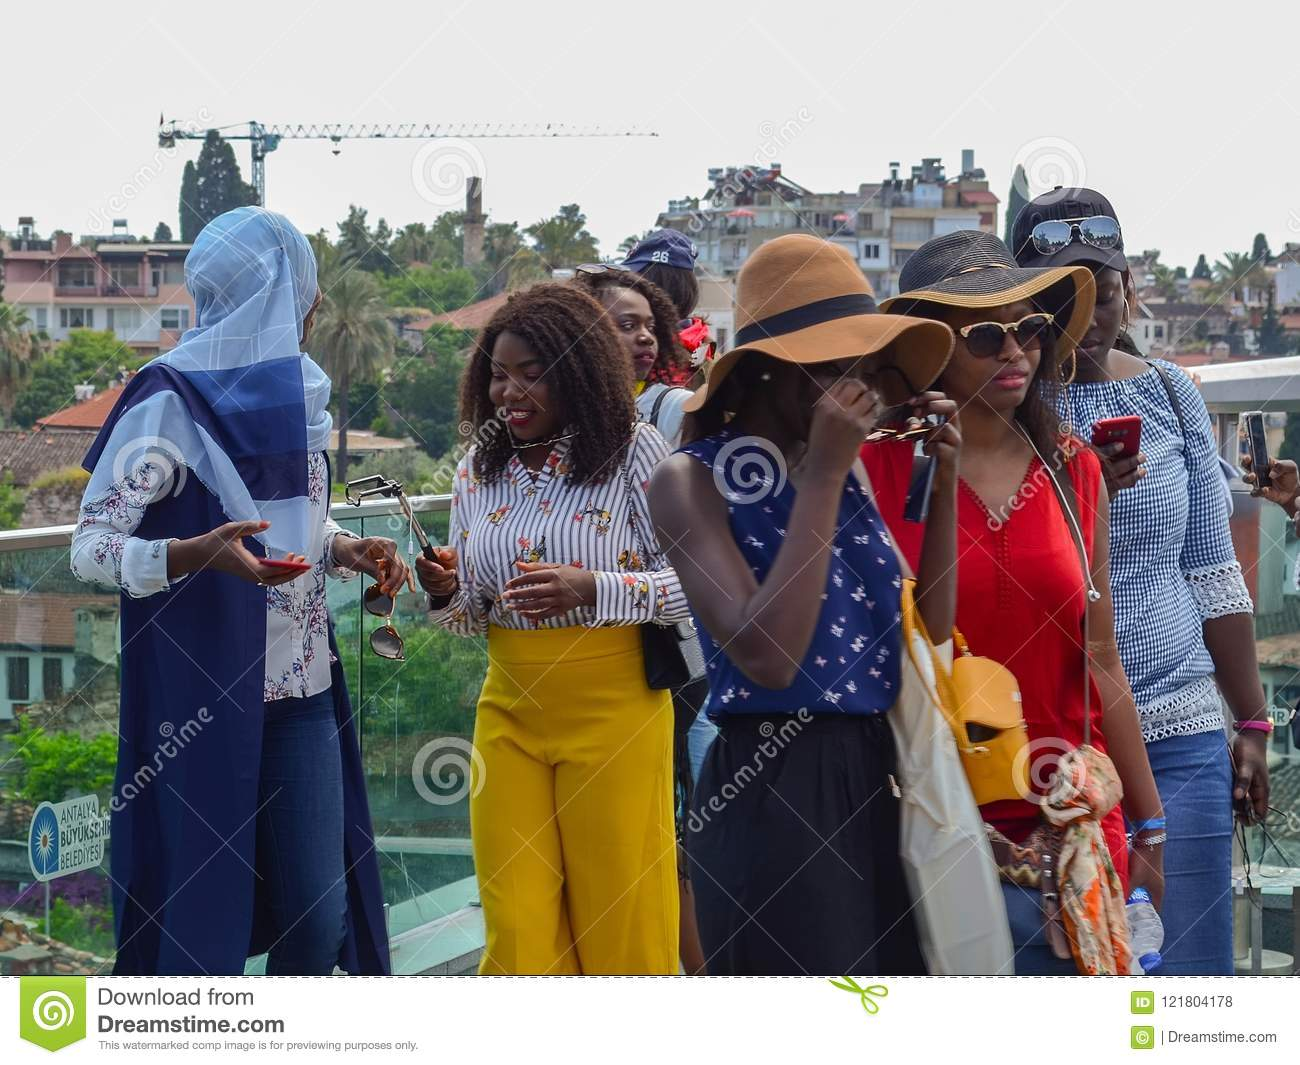 Turkey, Antalya, May 10, 2018. Group of young African women in bright clothes on the viewing platform in the old city inspecting t